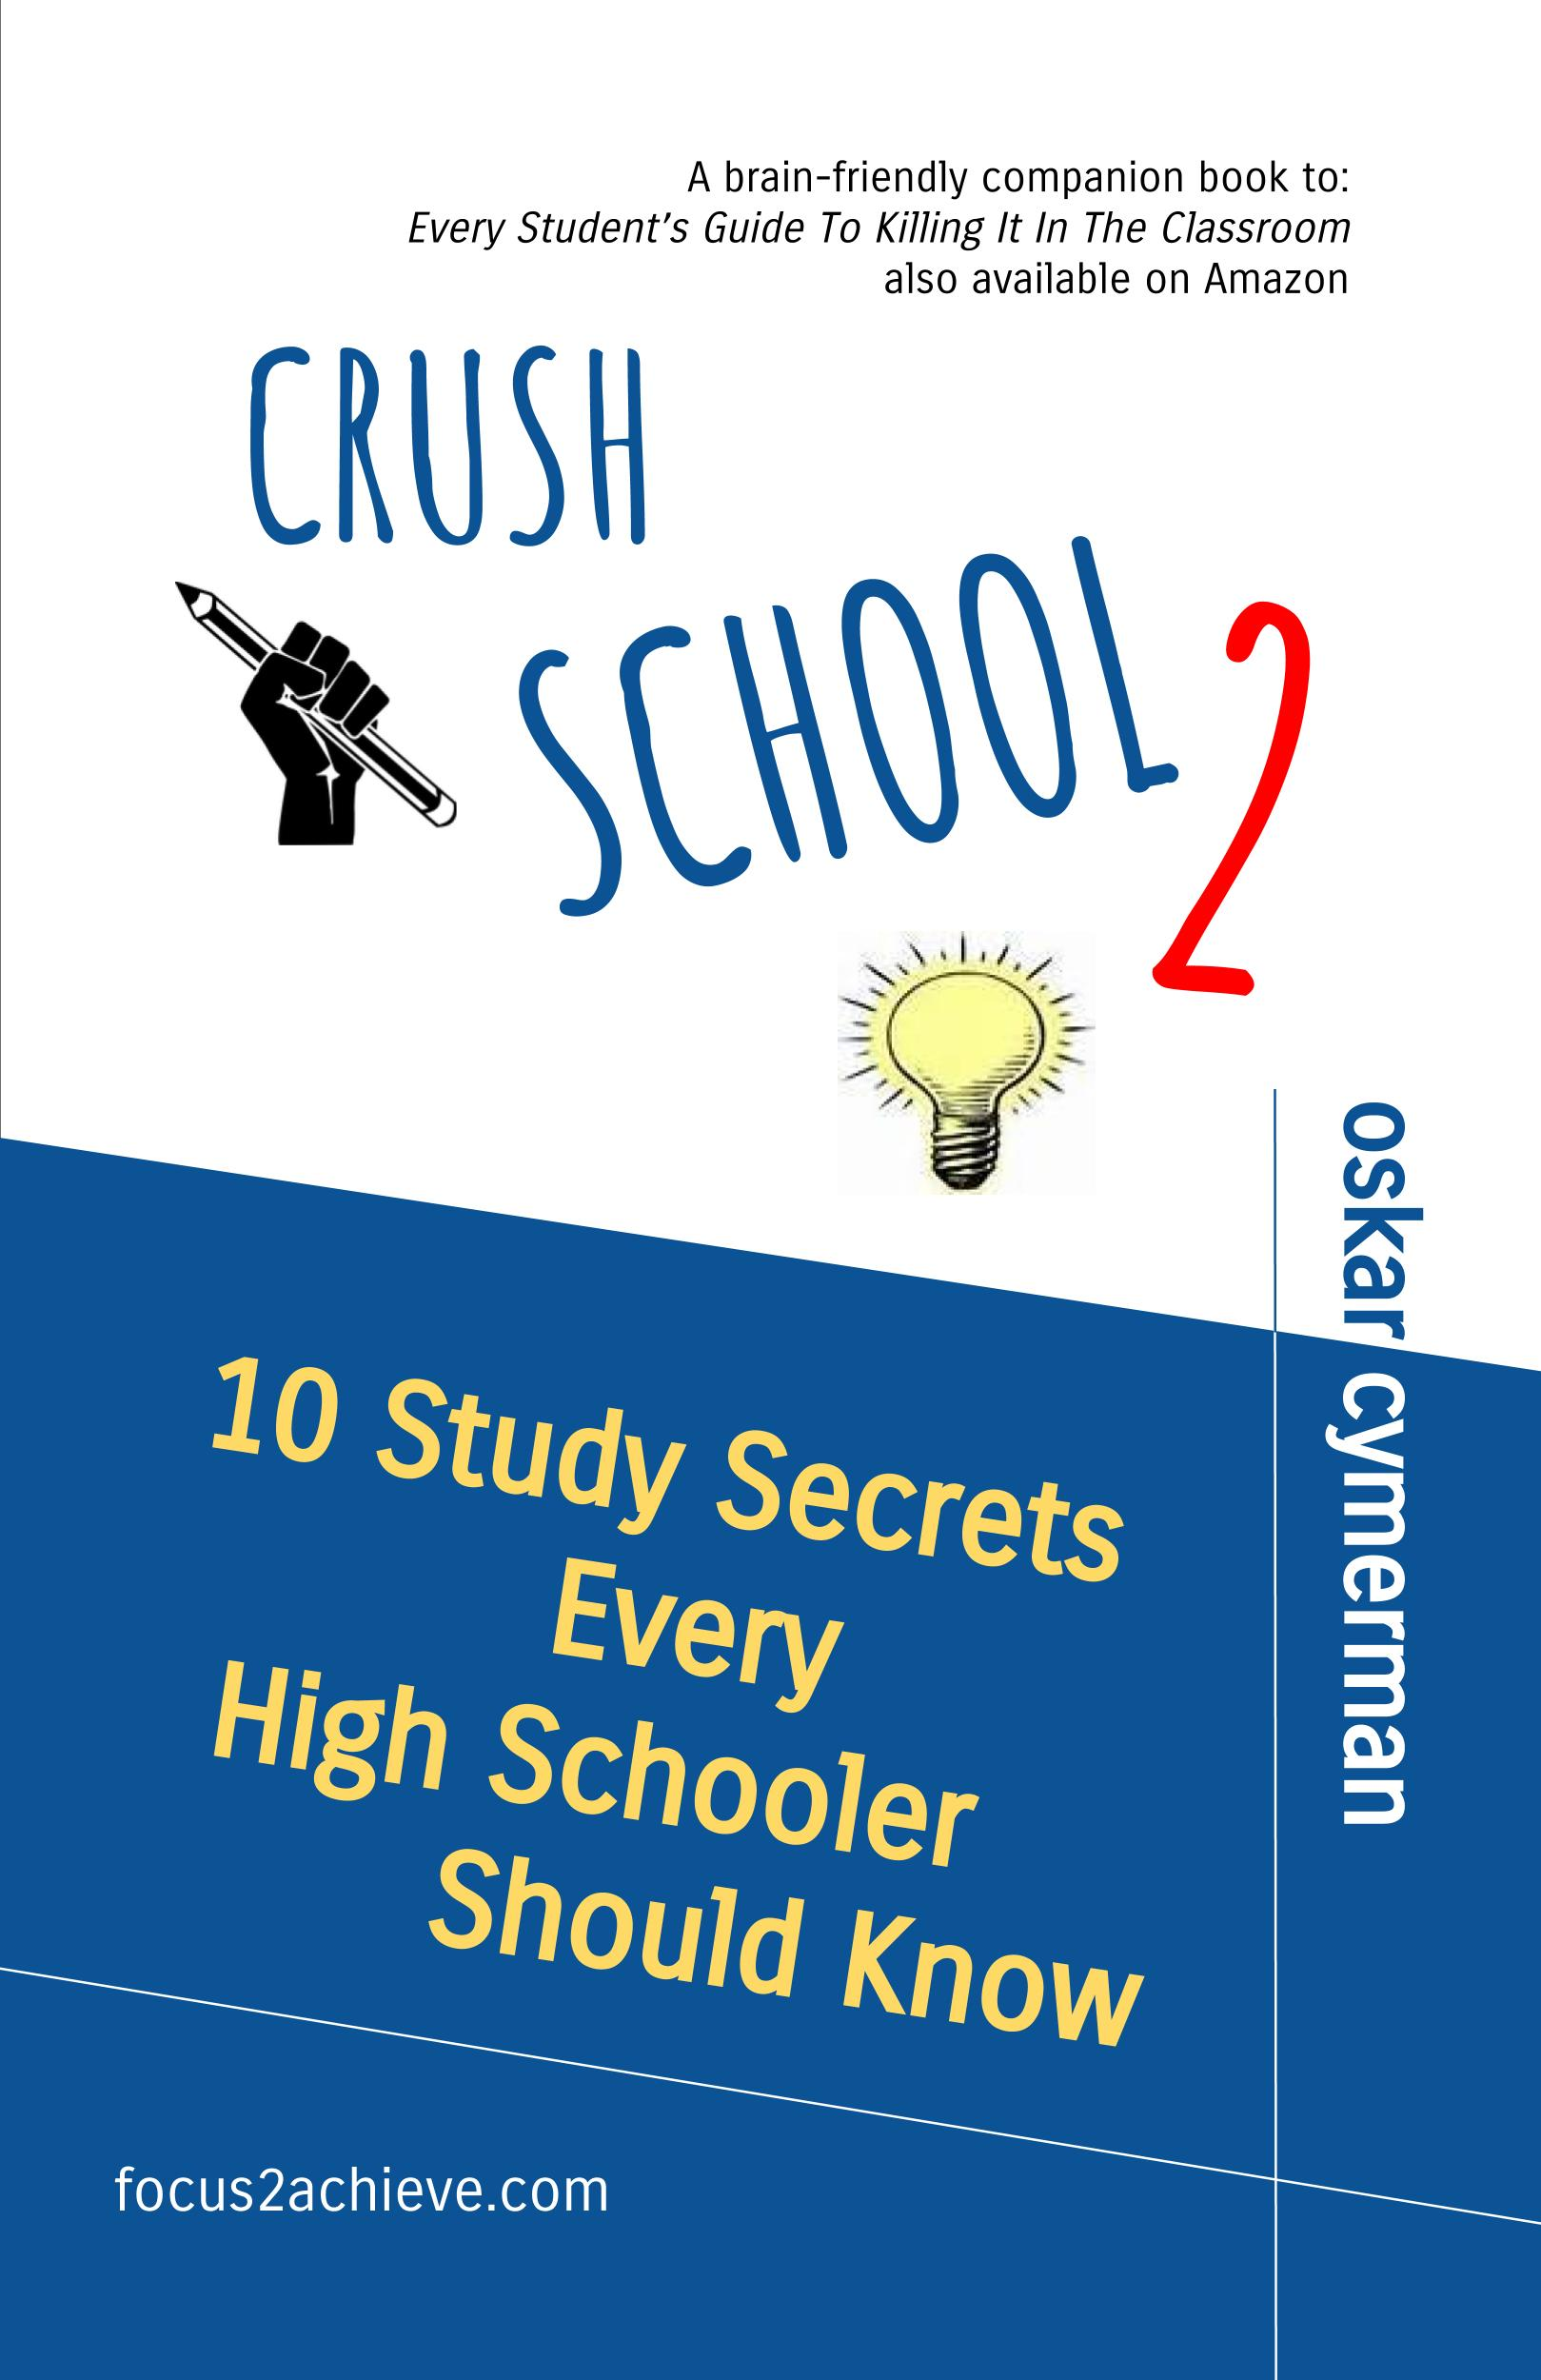 Crush School 2: 10 study secrets every high schooler should know